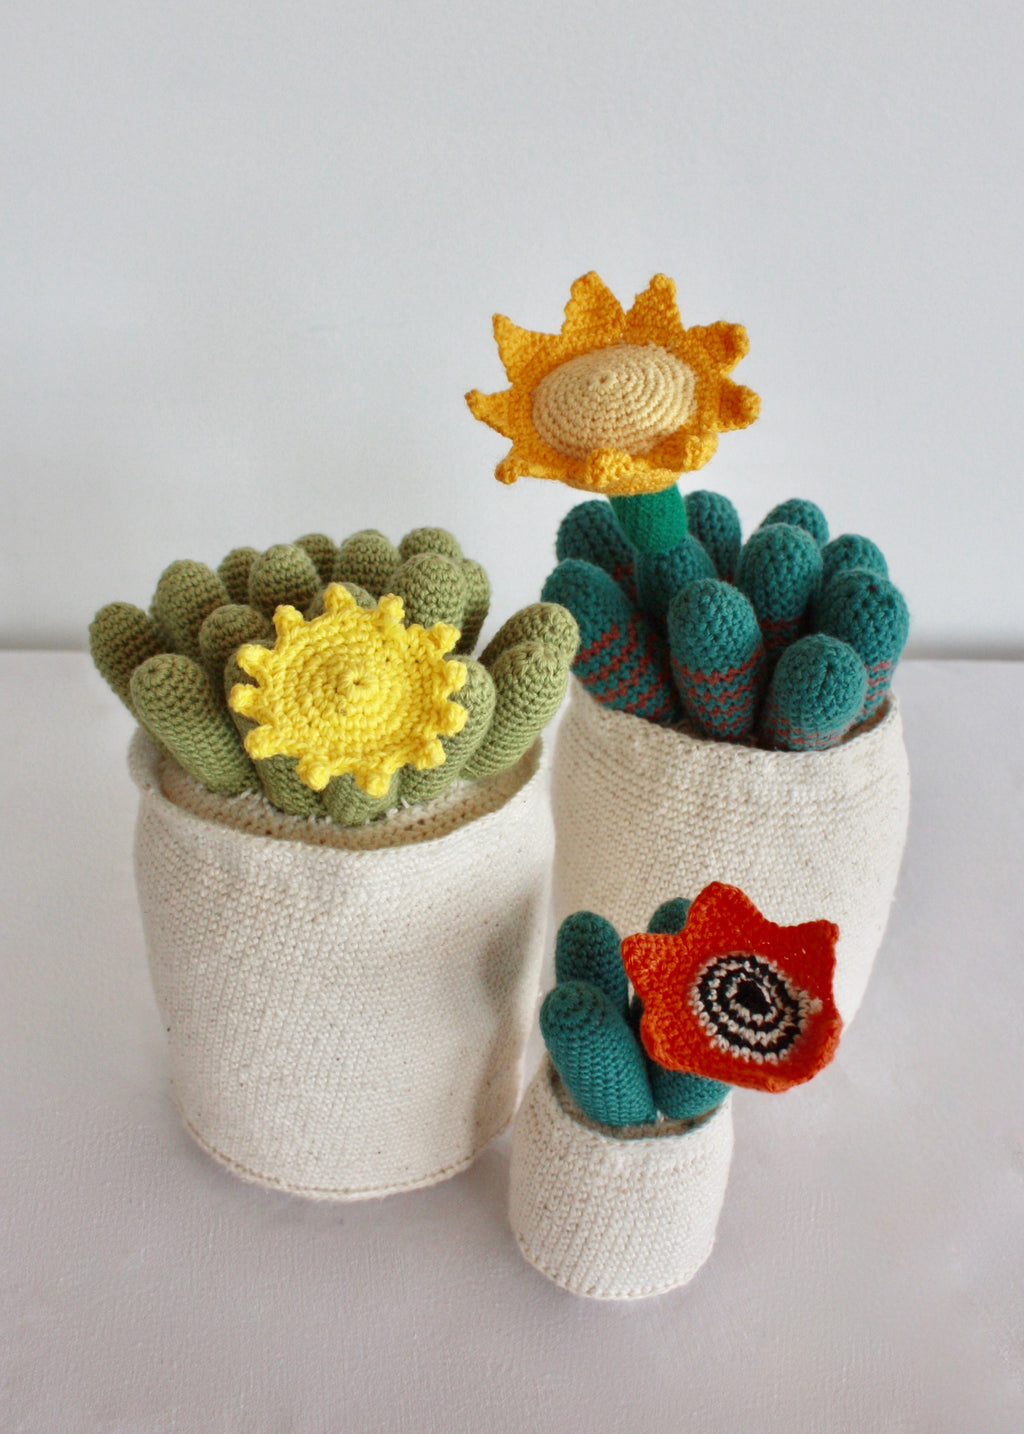 Flowering Crochet Cactus-Orange Star Flower